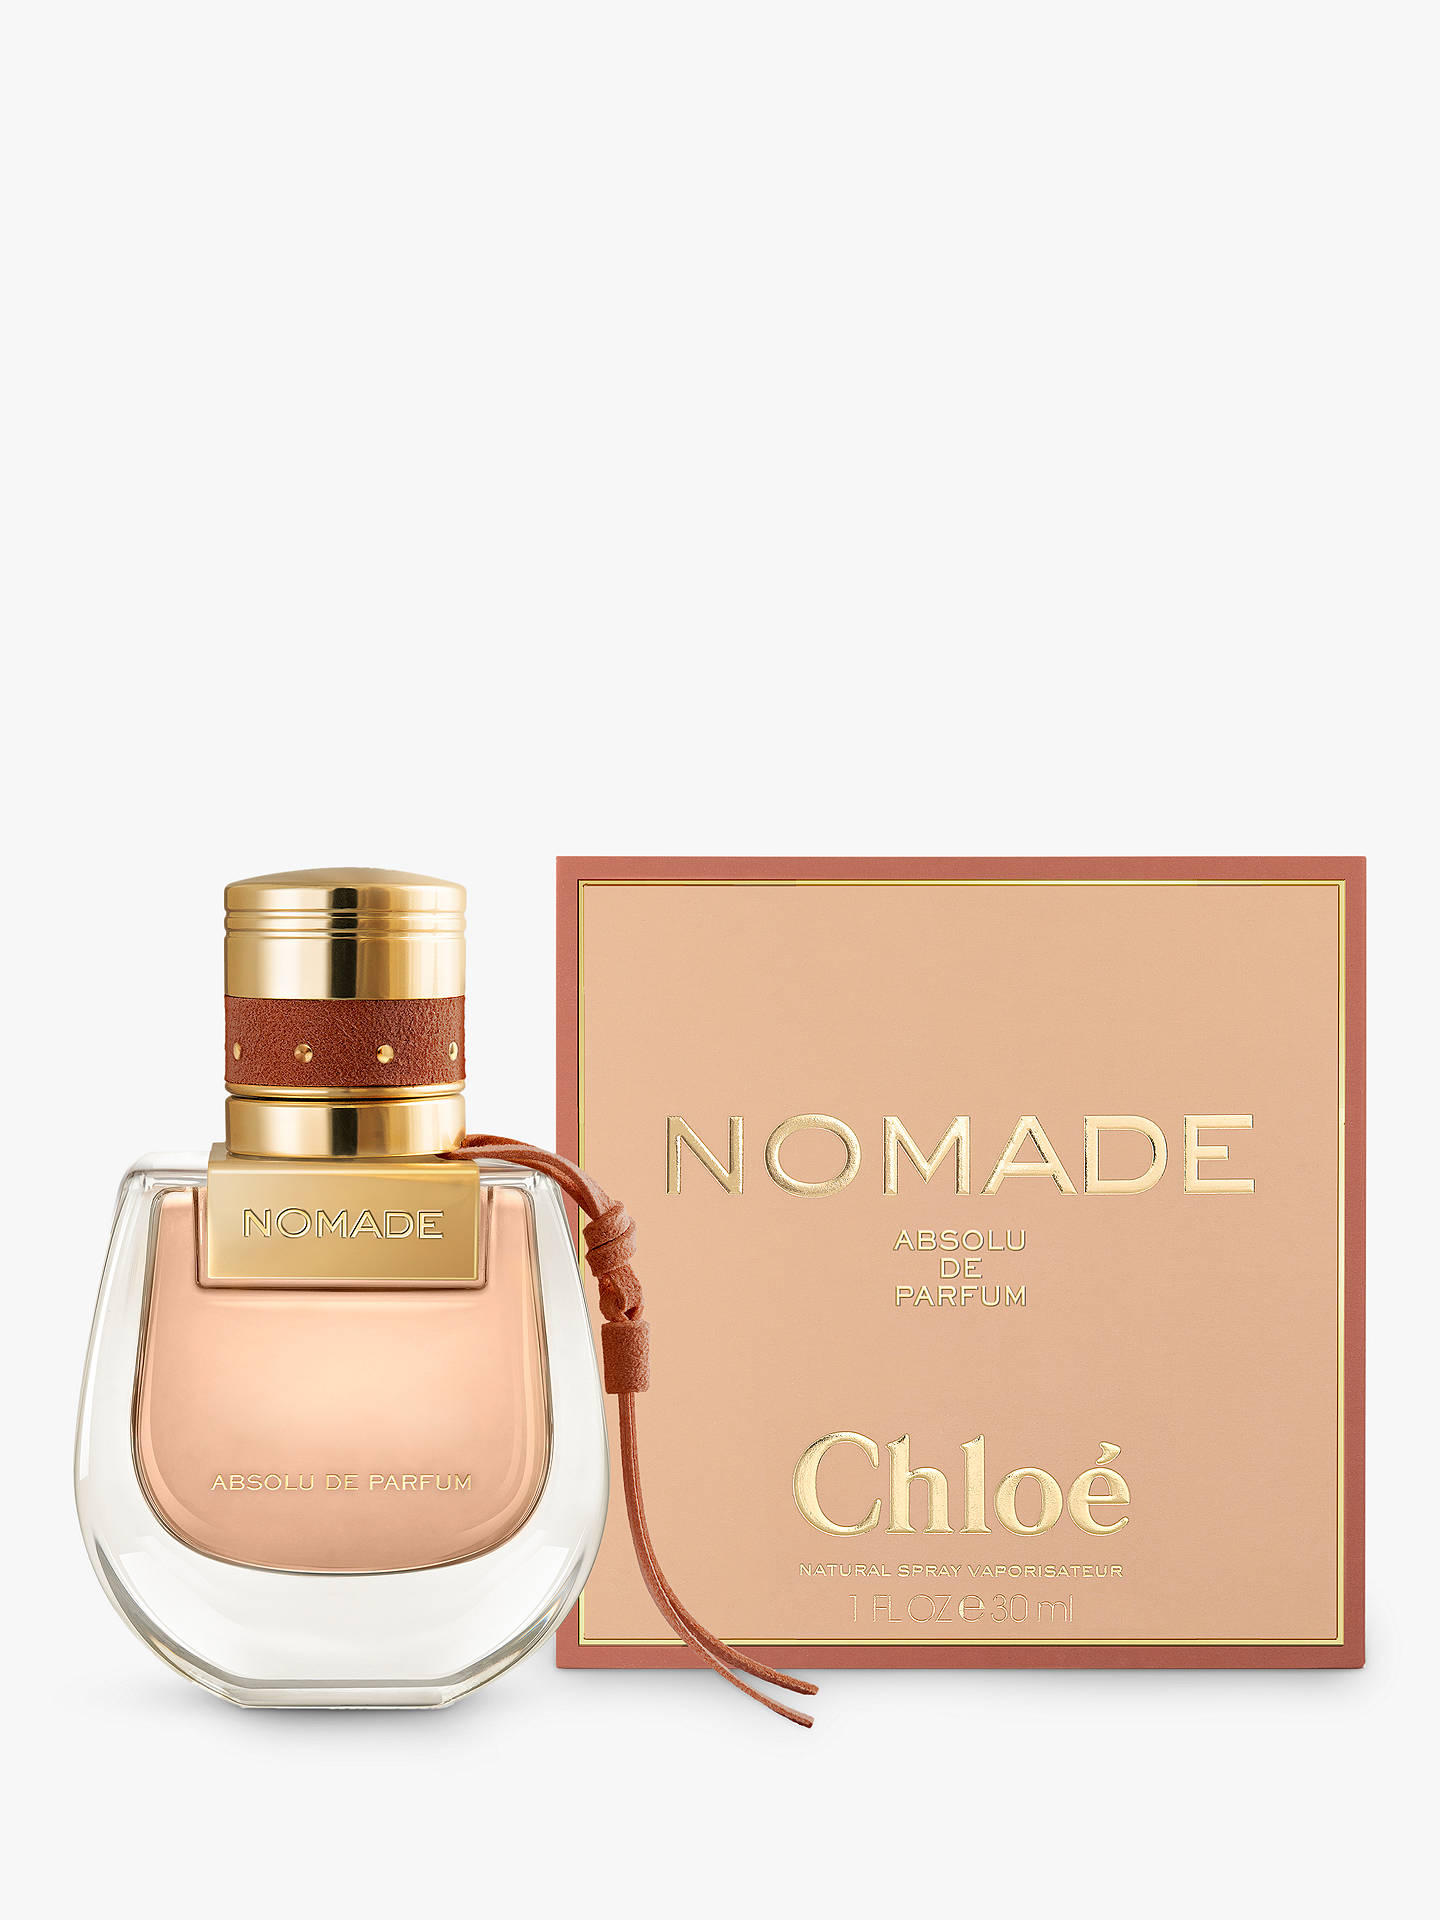 Buy Chloé Nomade Absolu de Parfum, 30ml Online at johnlewis.com